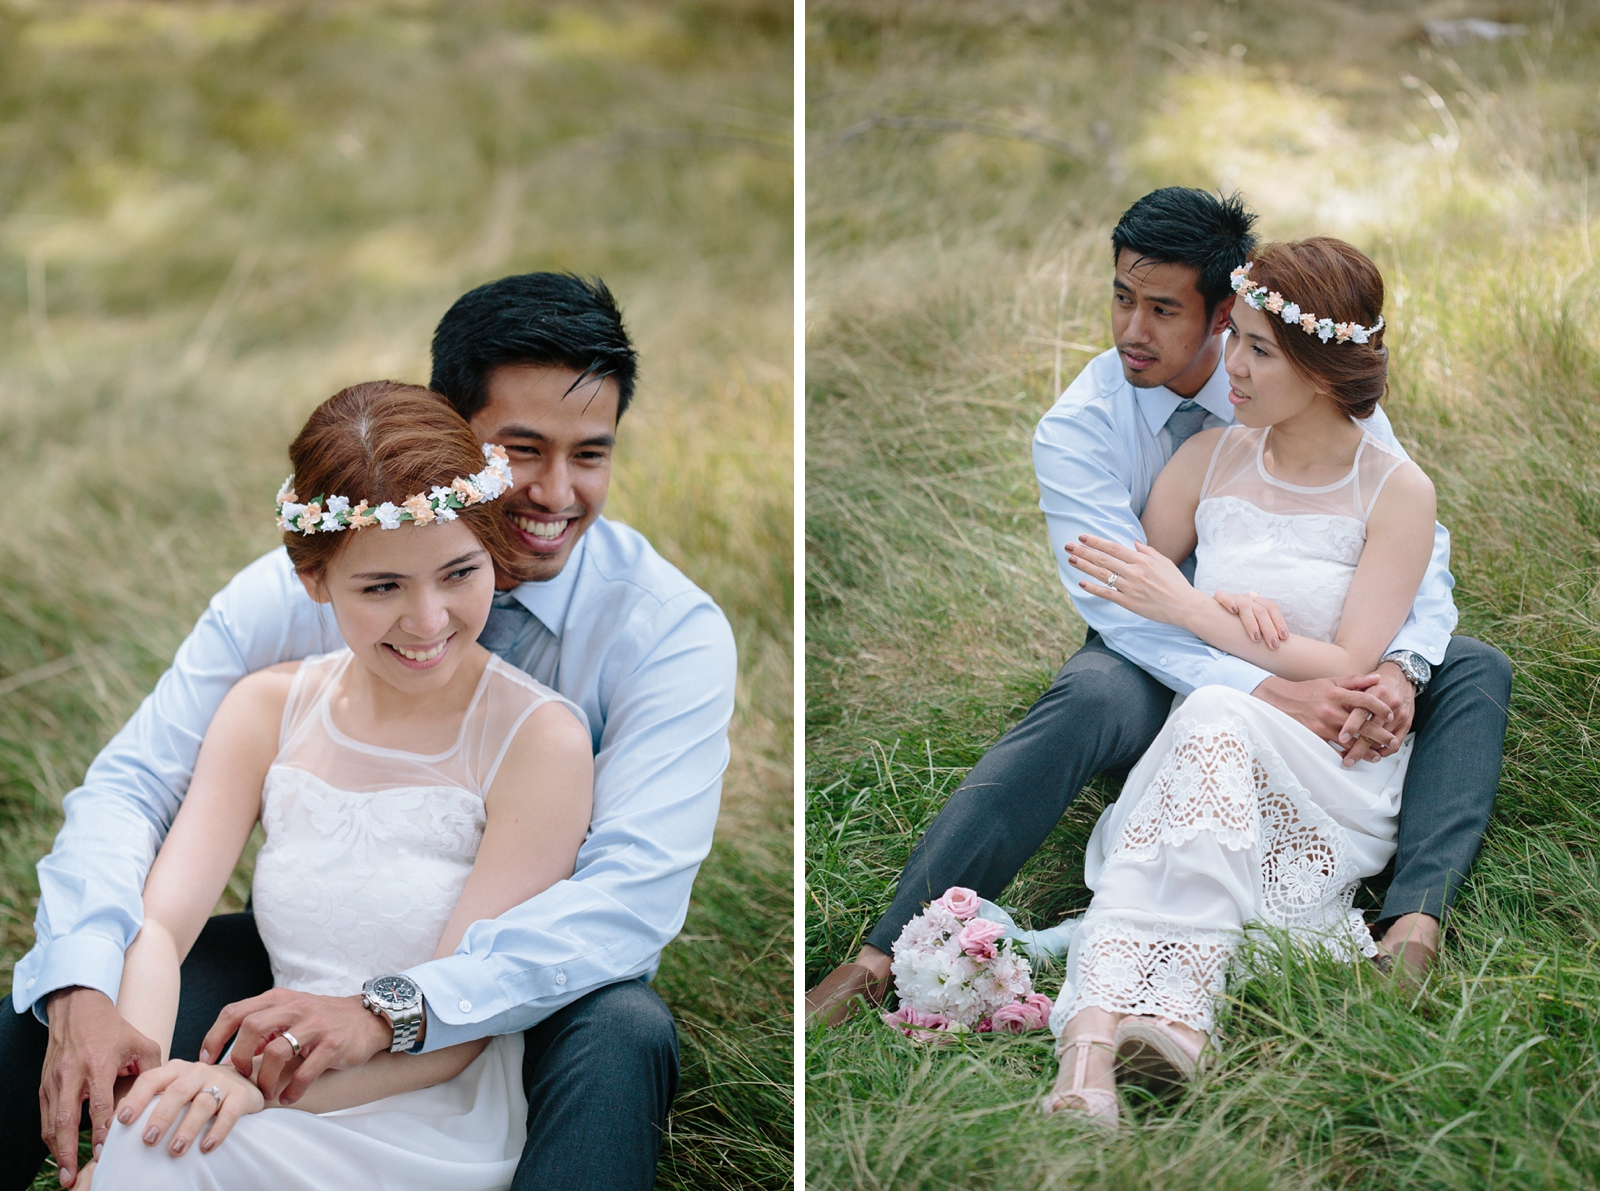 RamGia_Auckland Wedding Photographer_Patty Lagera_0049.jpg